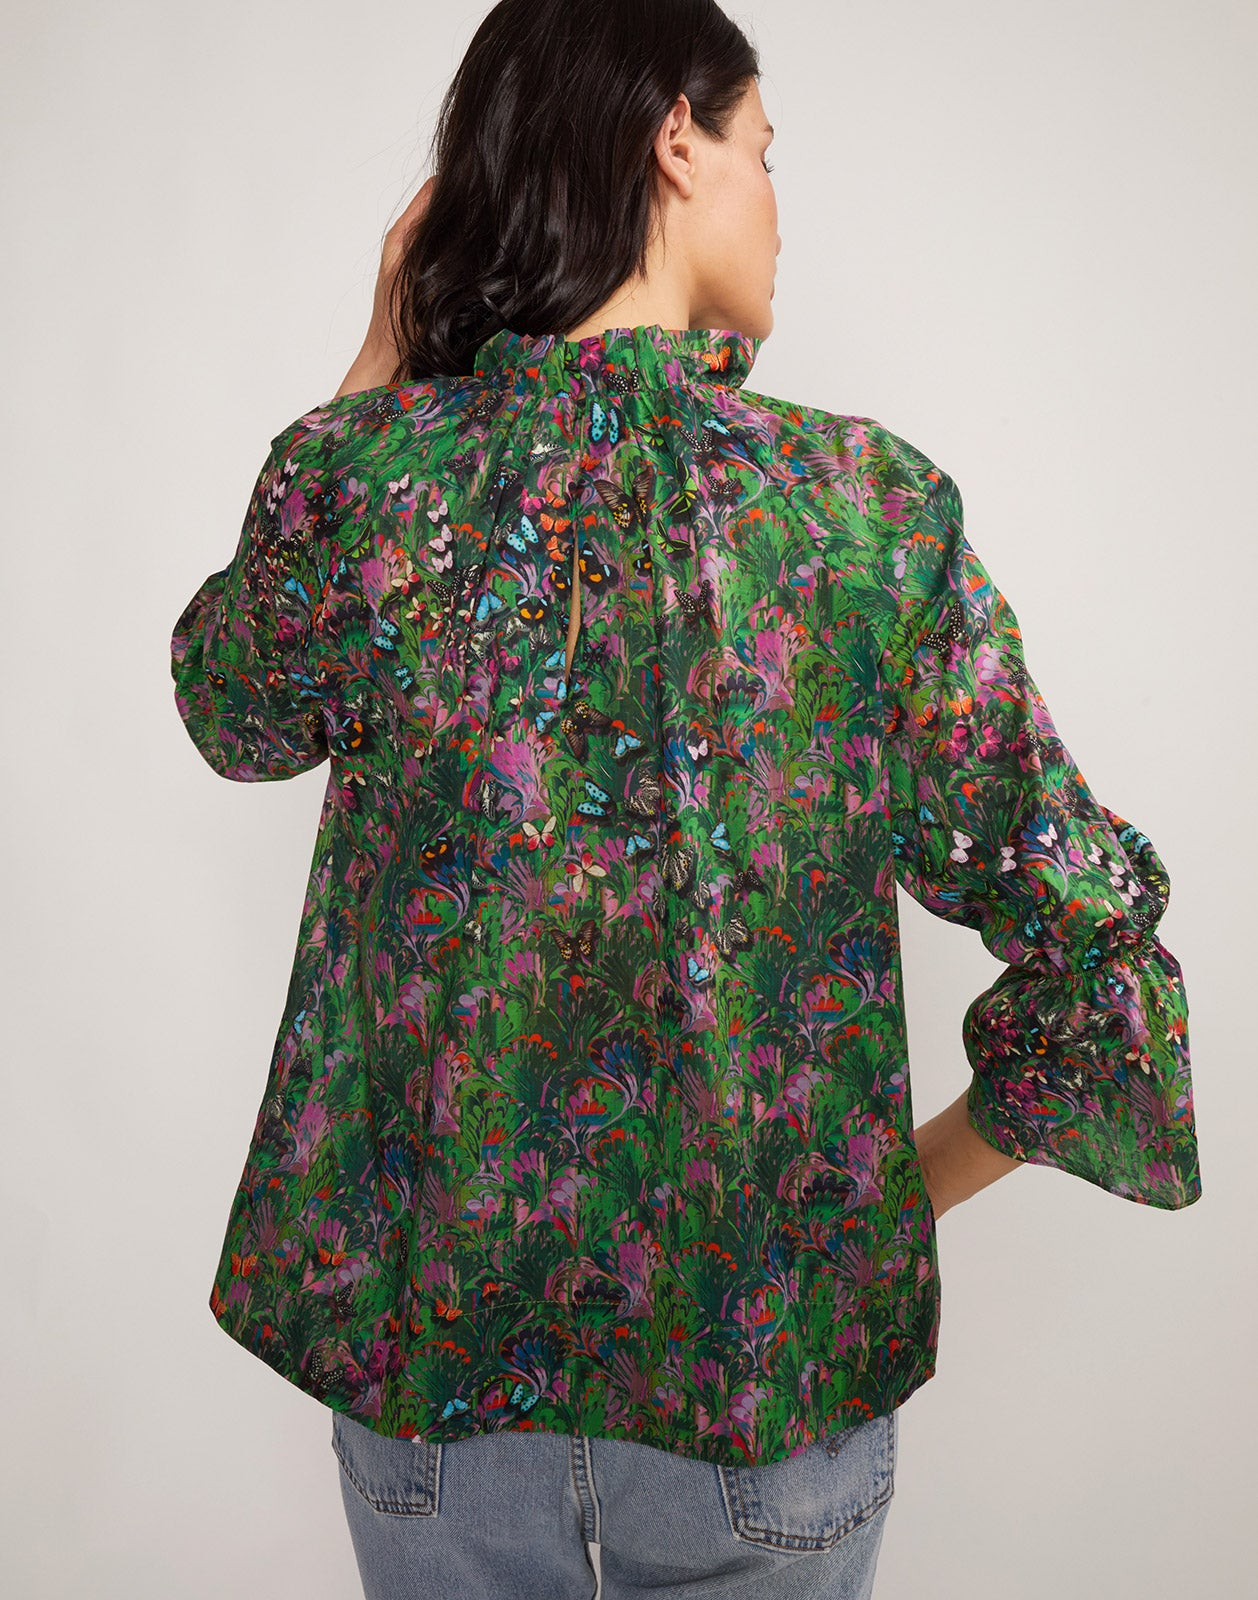 Close up back view of model wearing Butterfly Cotton Waterfall Blouse.